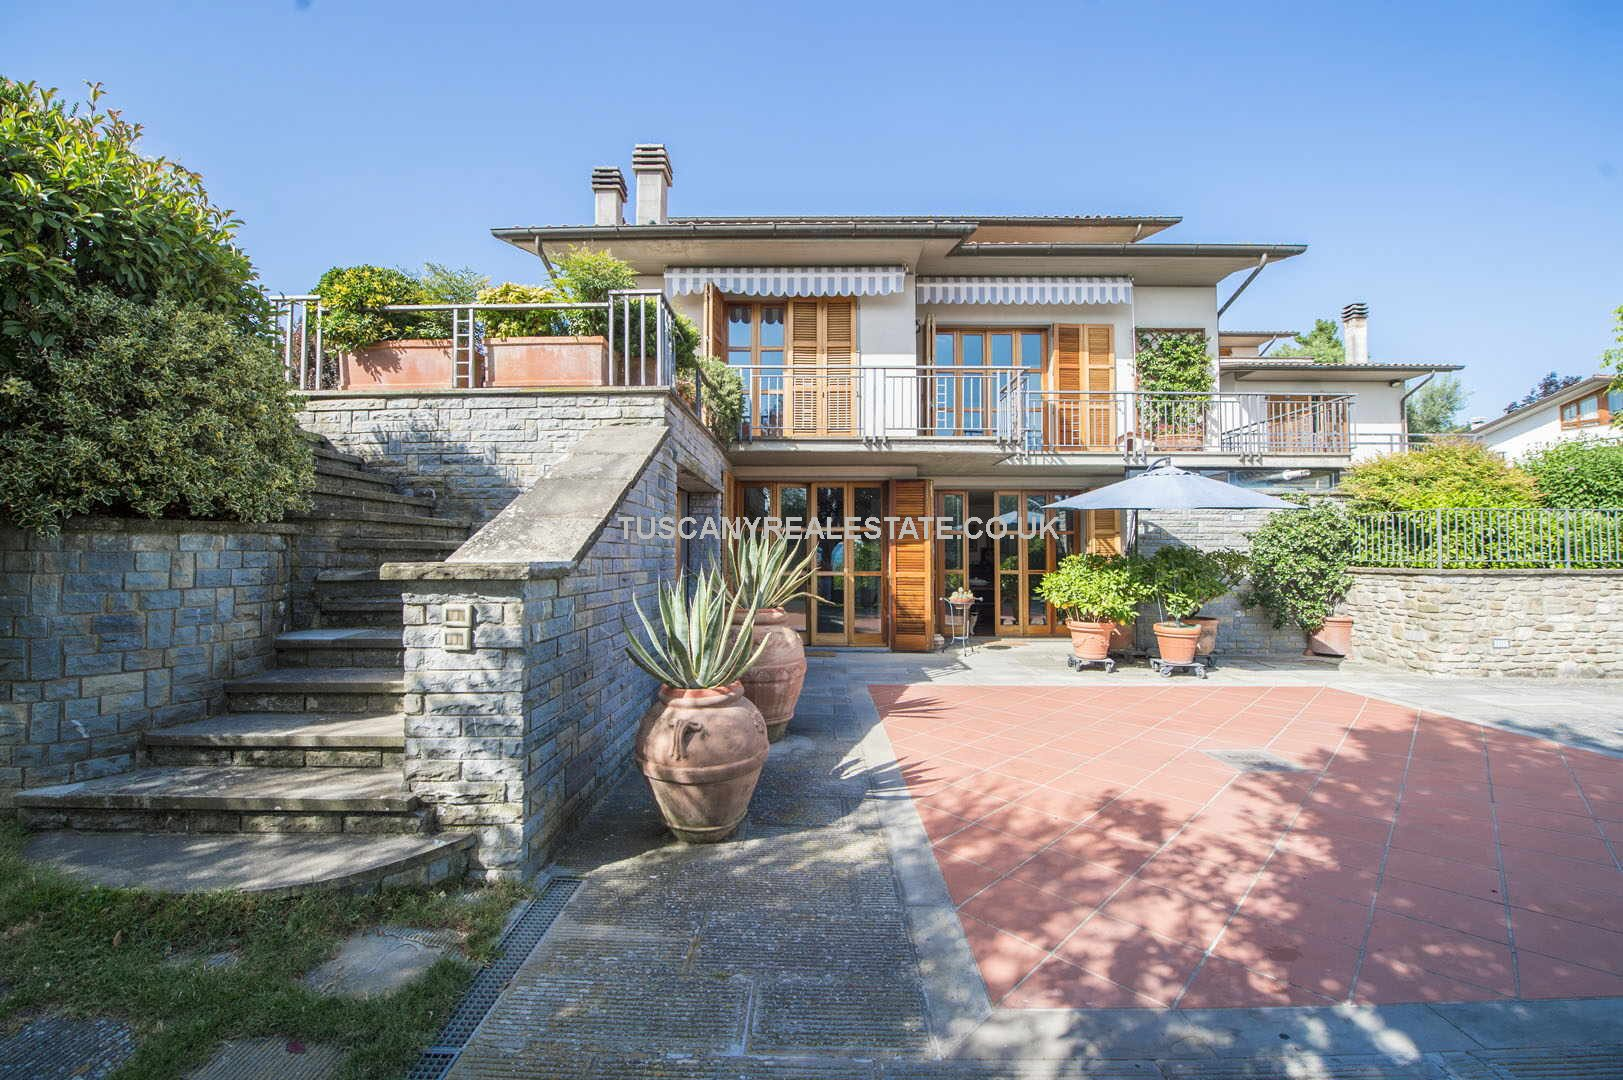 Tuscany House for Sale